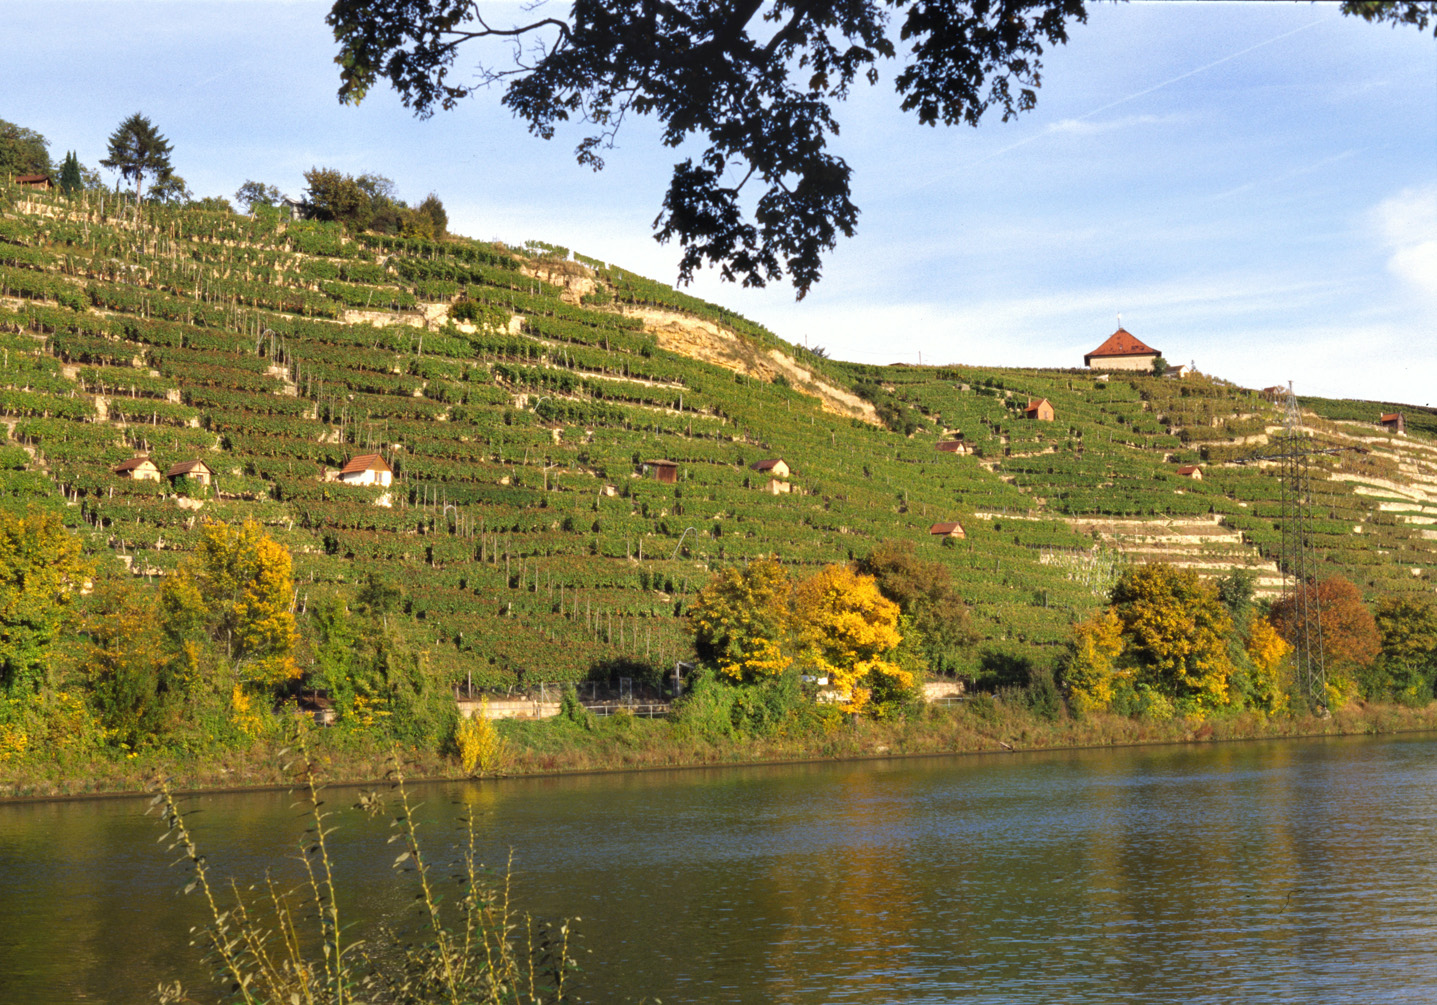 The well-known Cannstatter Zuckerle vineyard situated in terraces on the river Neckar, is in Bad Cannstatt, a part of Stuttgart.